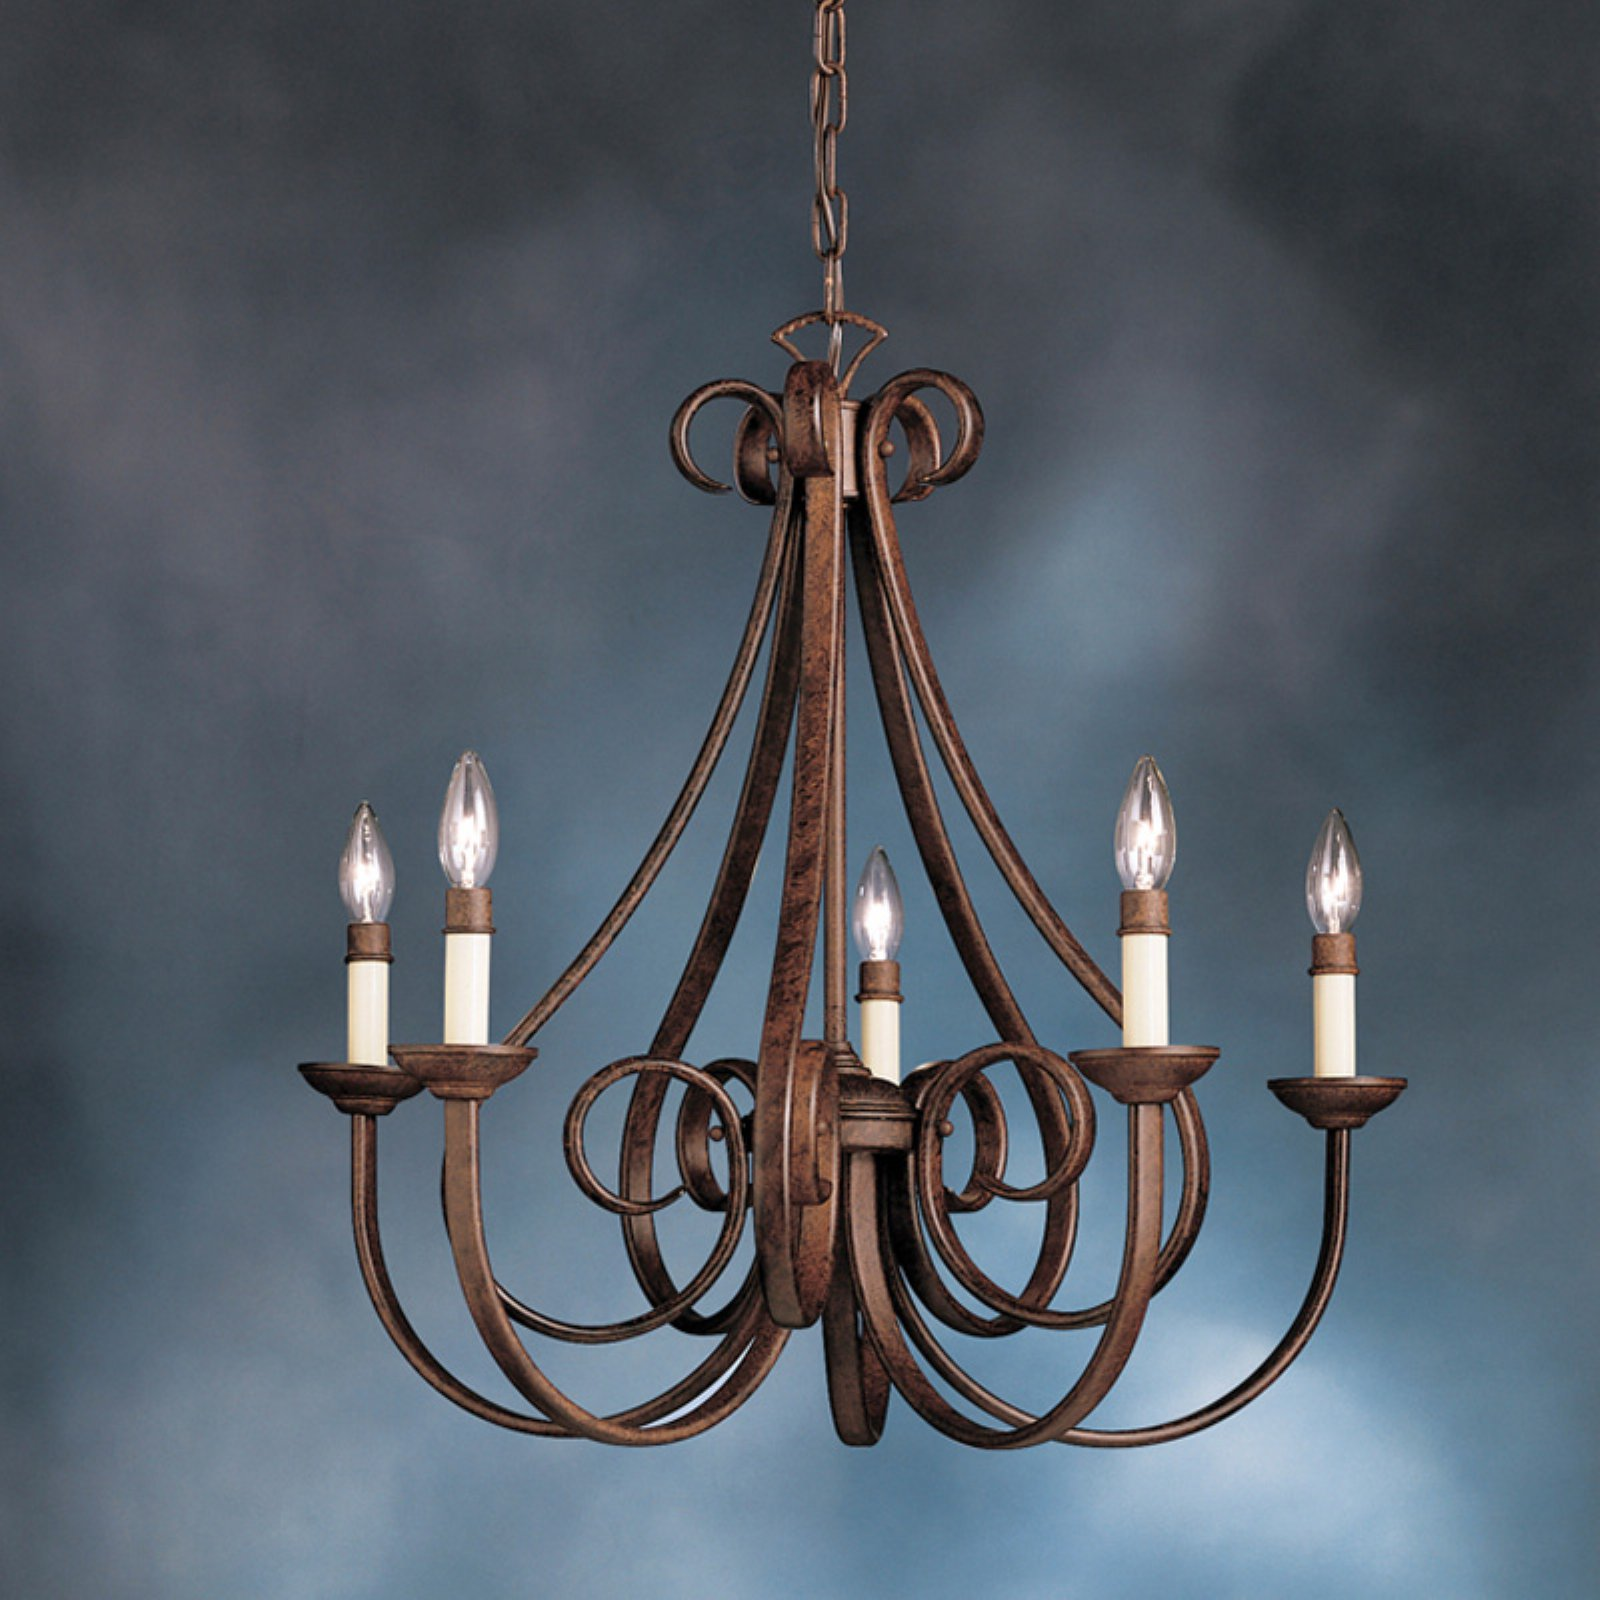 Kichler Dover 2021 Chandelier - 25.5 in.